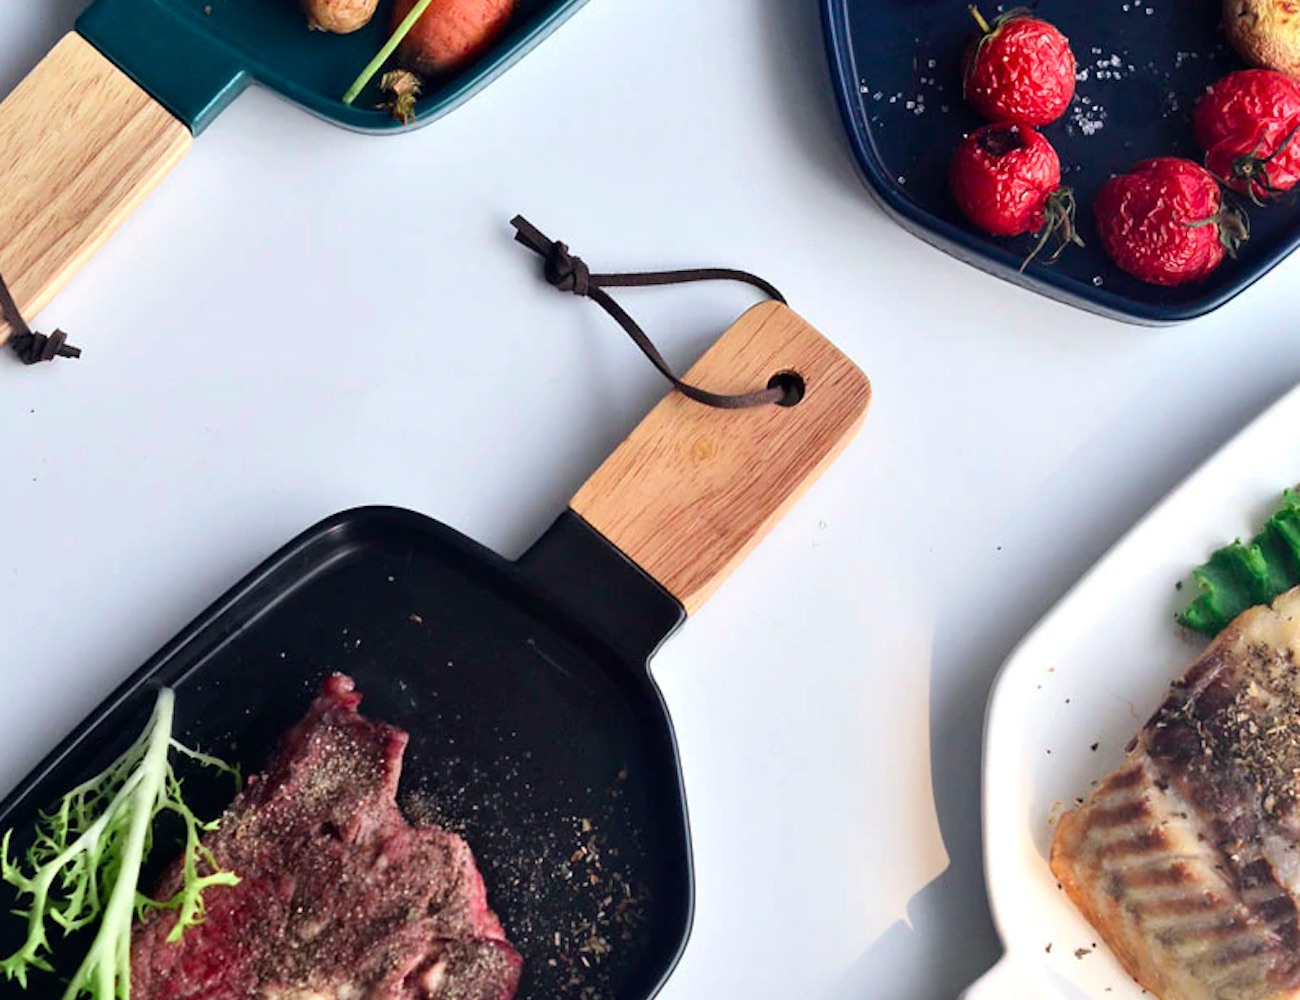 Geometric Wooden Handle Serving Plate add a modern twist to your table